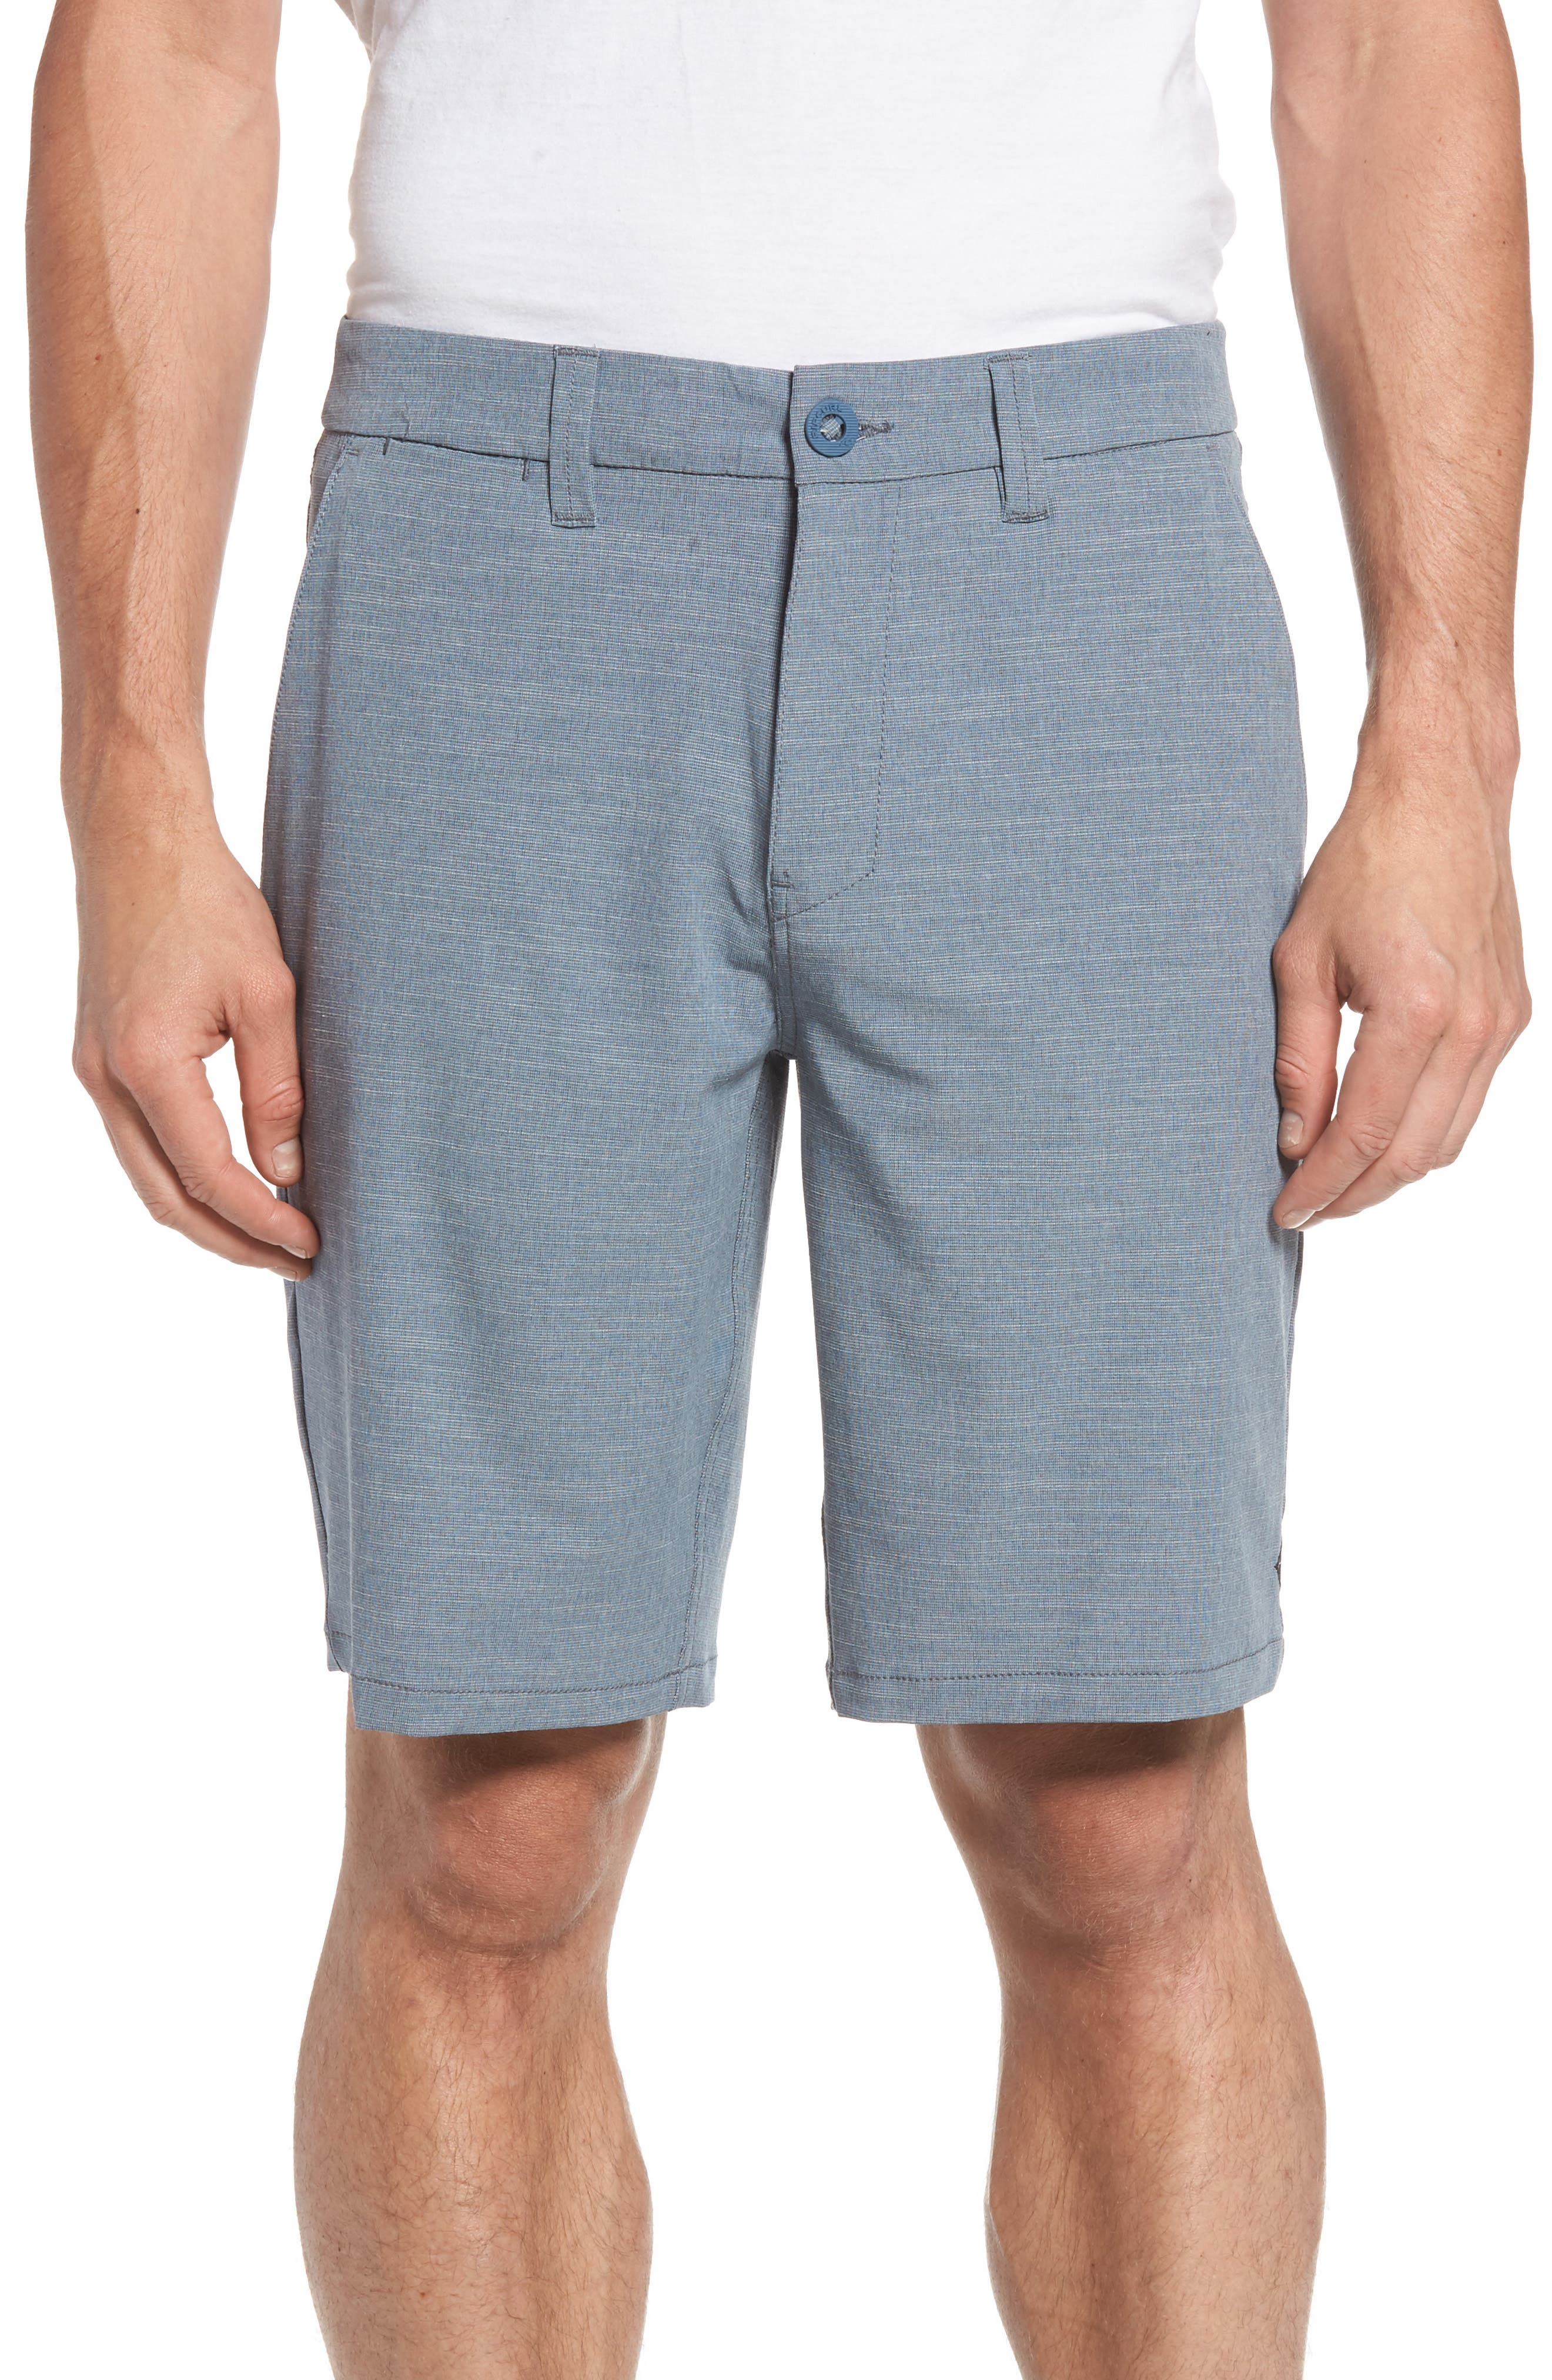 Rip Curl Mirage Jackson Boardwalk Hybrid Shorts